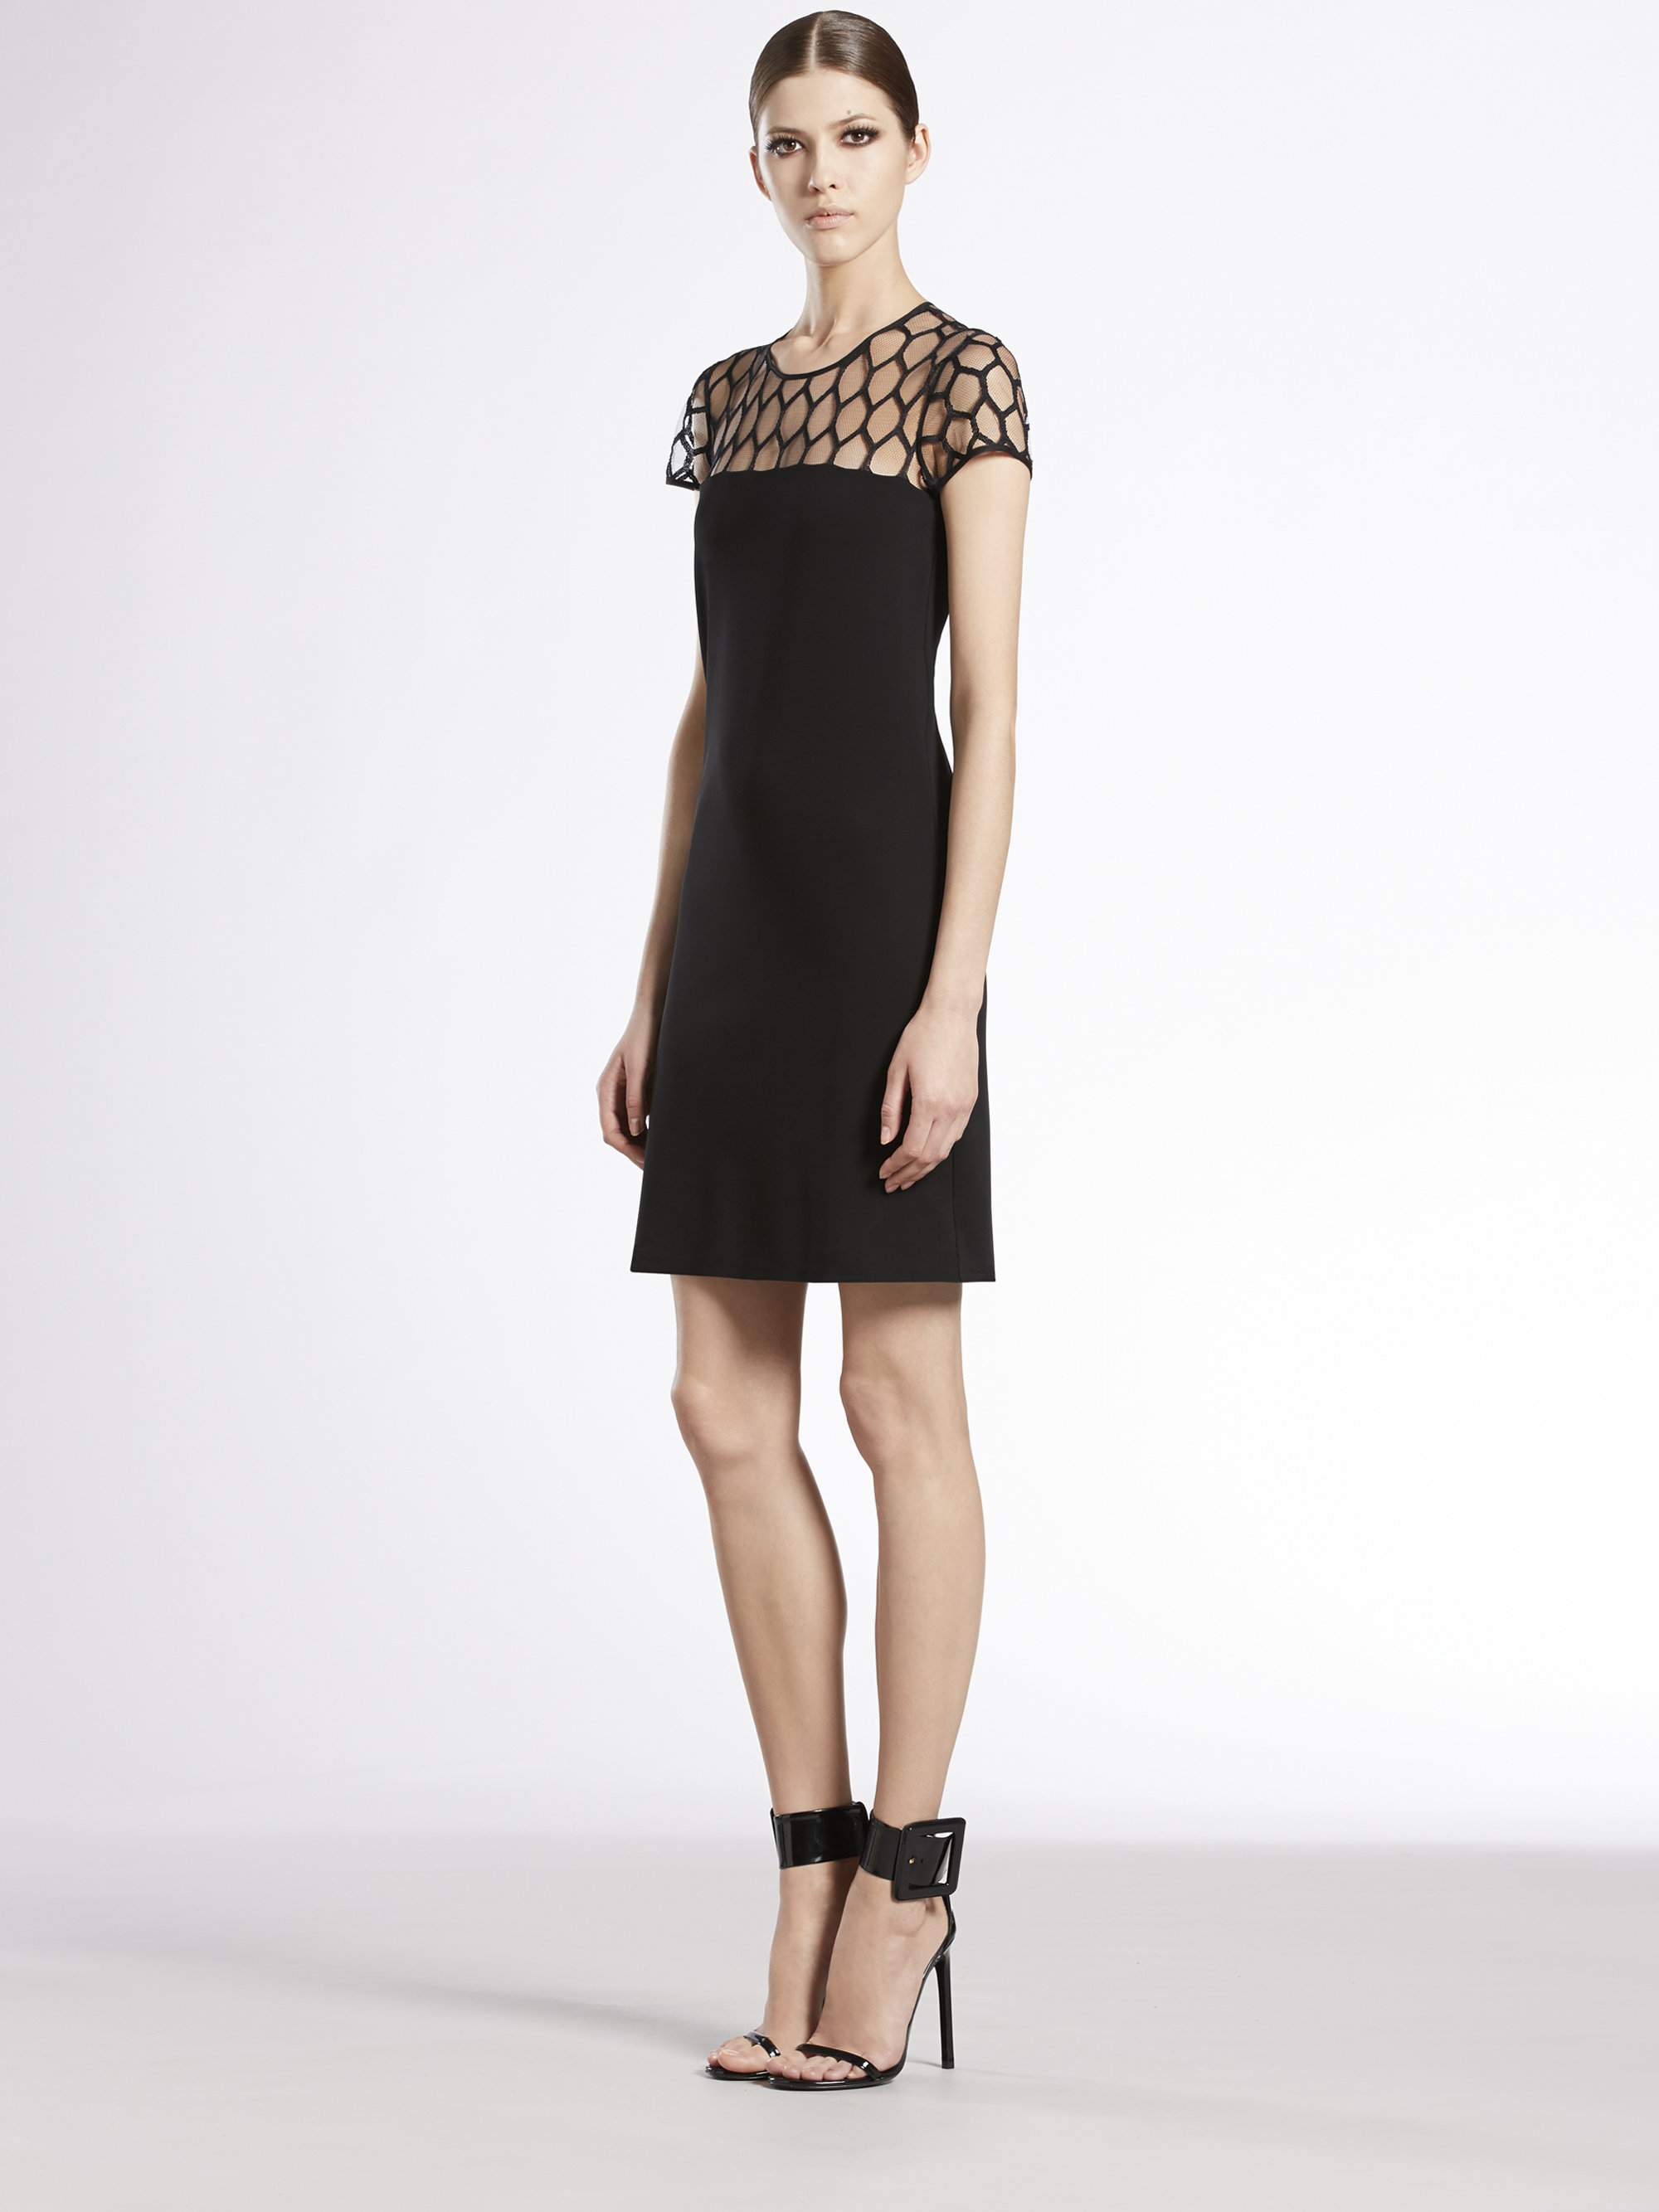 gucci inspired clothing. gallery gucci inspired clothing